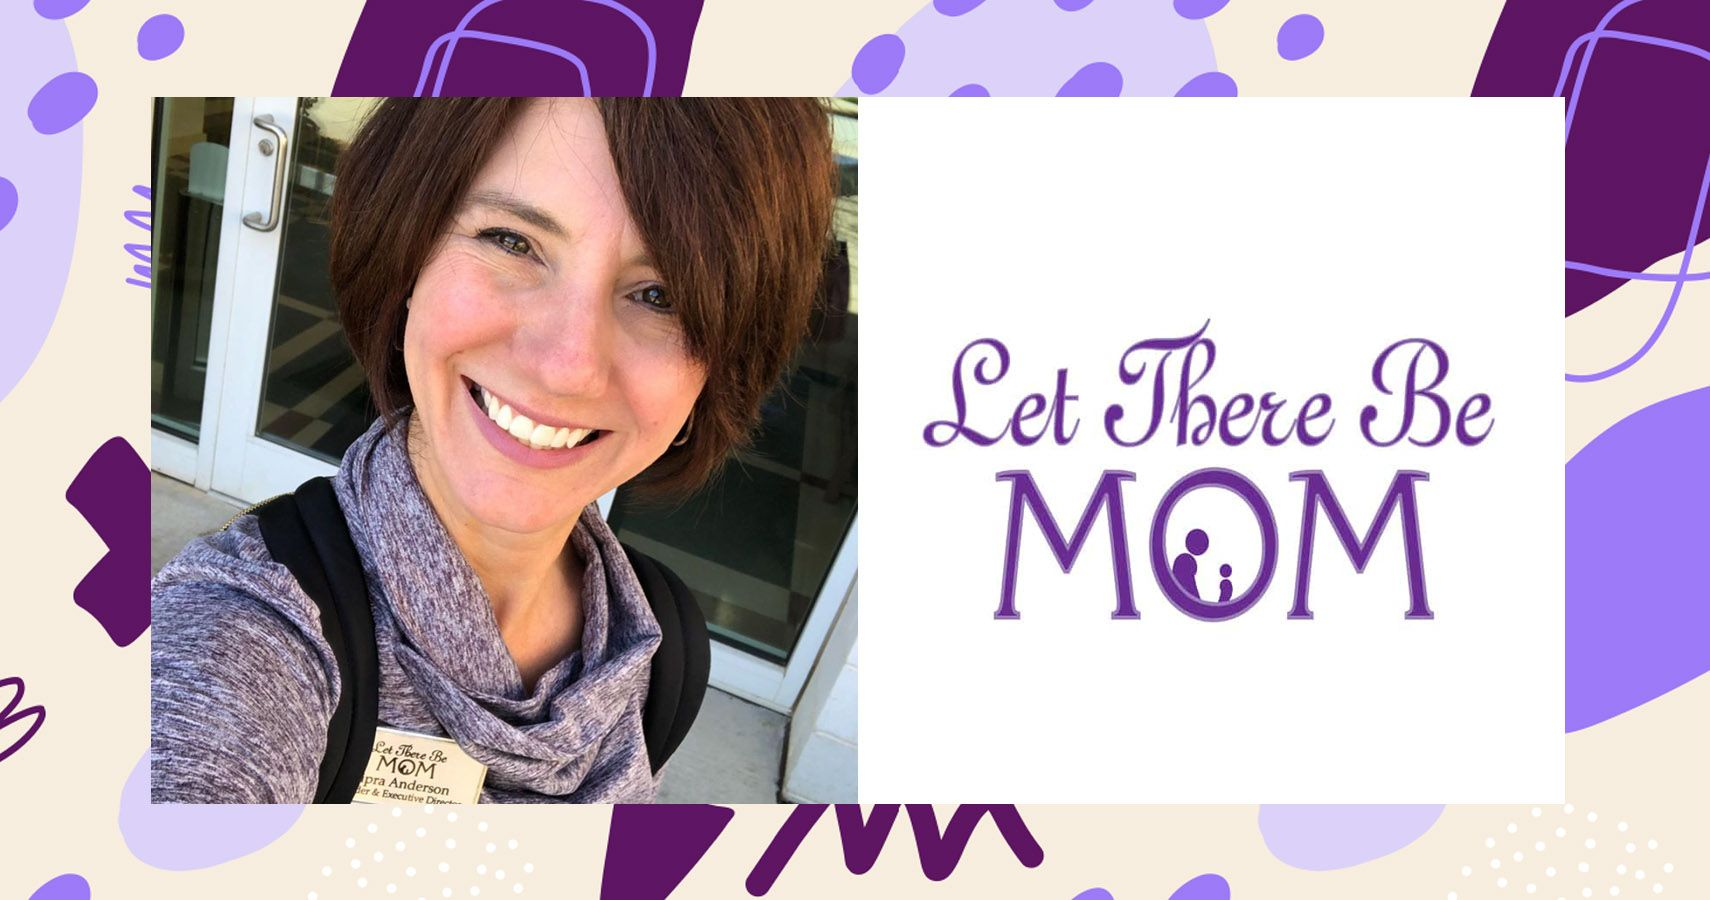 Let There Be Mom Non-Profit Explained   Moms.com